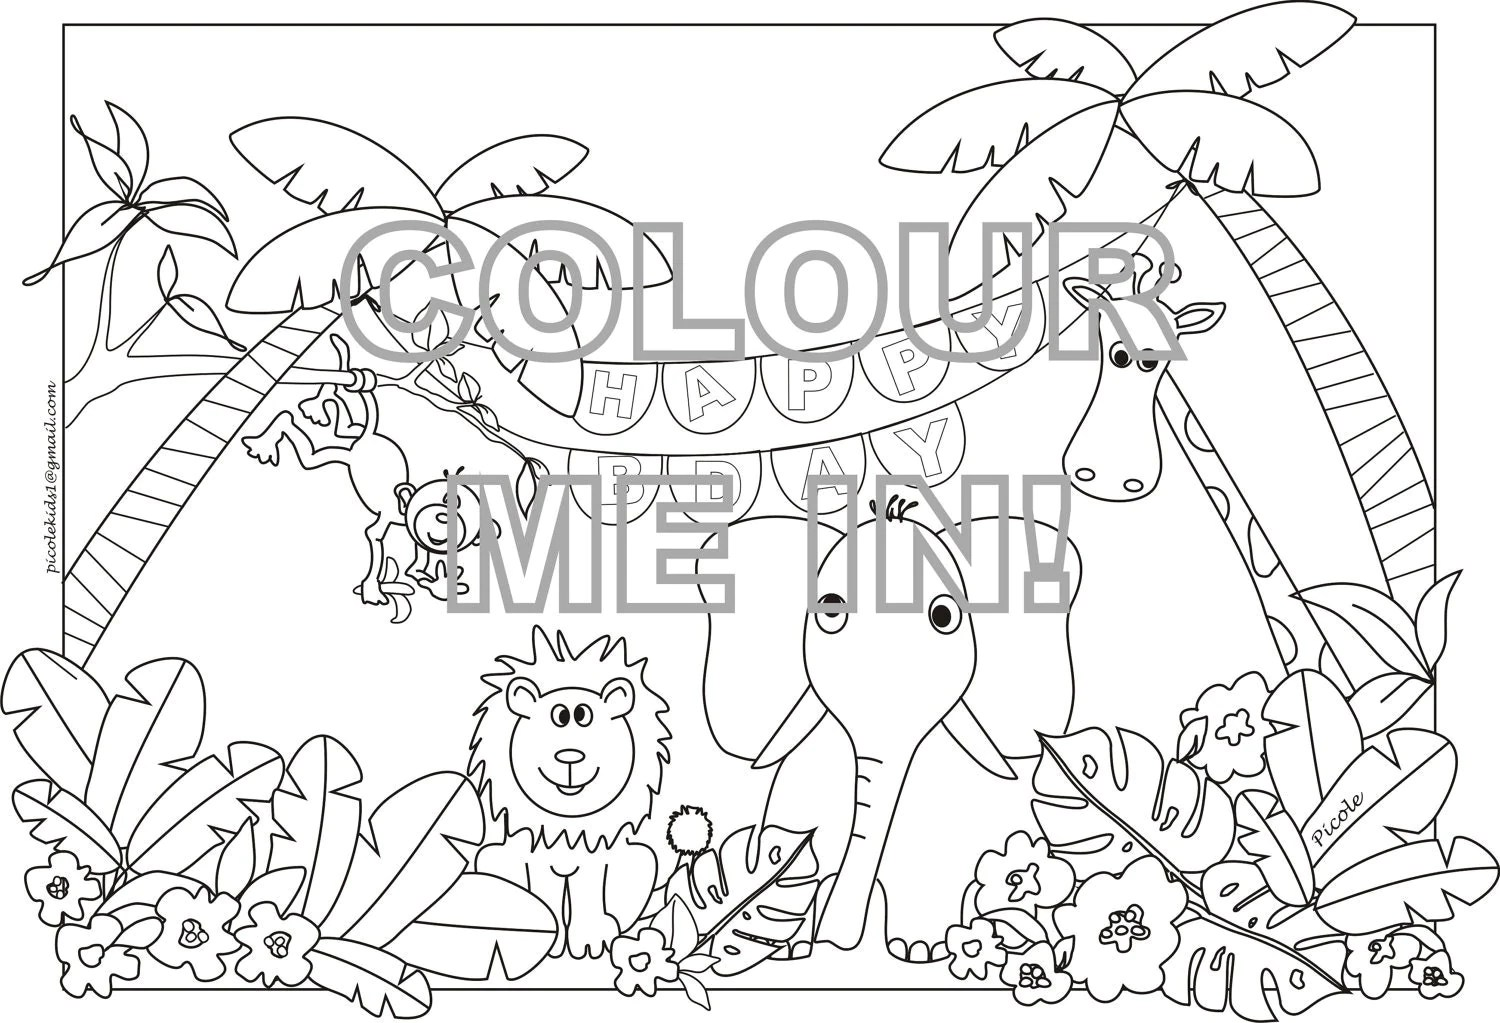 Items similar to Jungle animals Colouring page/sheet on Etsy   coloring pages for animals in the jungle